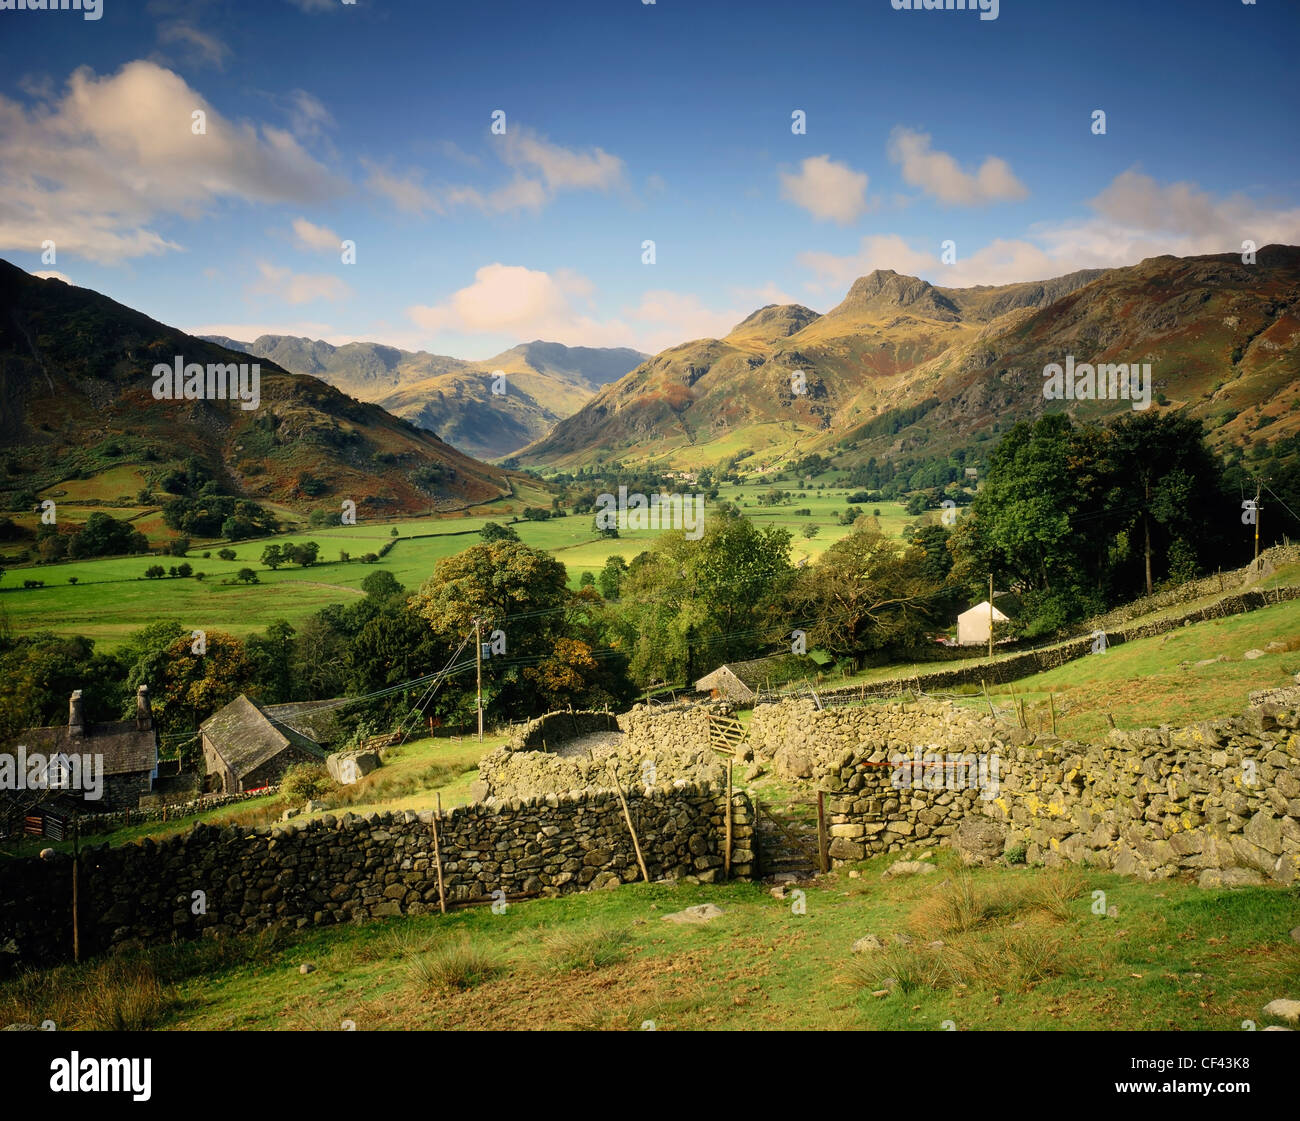 View across Langdale valley towards Langdale Pikes in the Lake District. - Stock Image